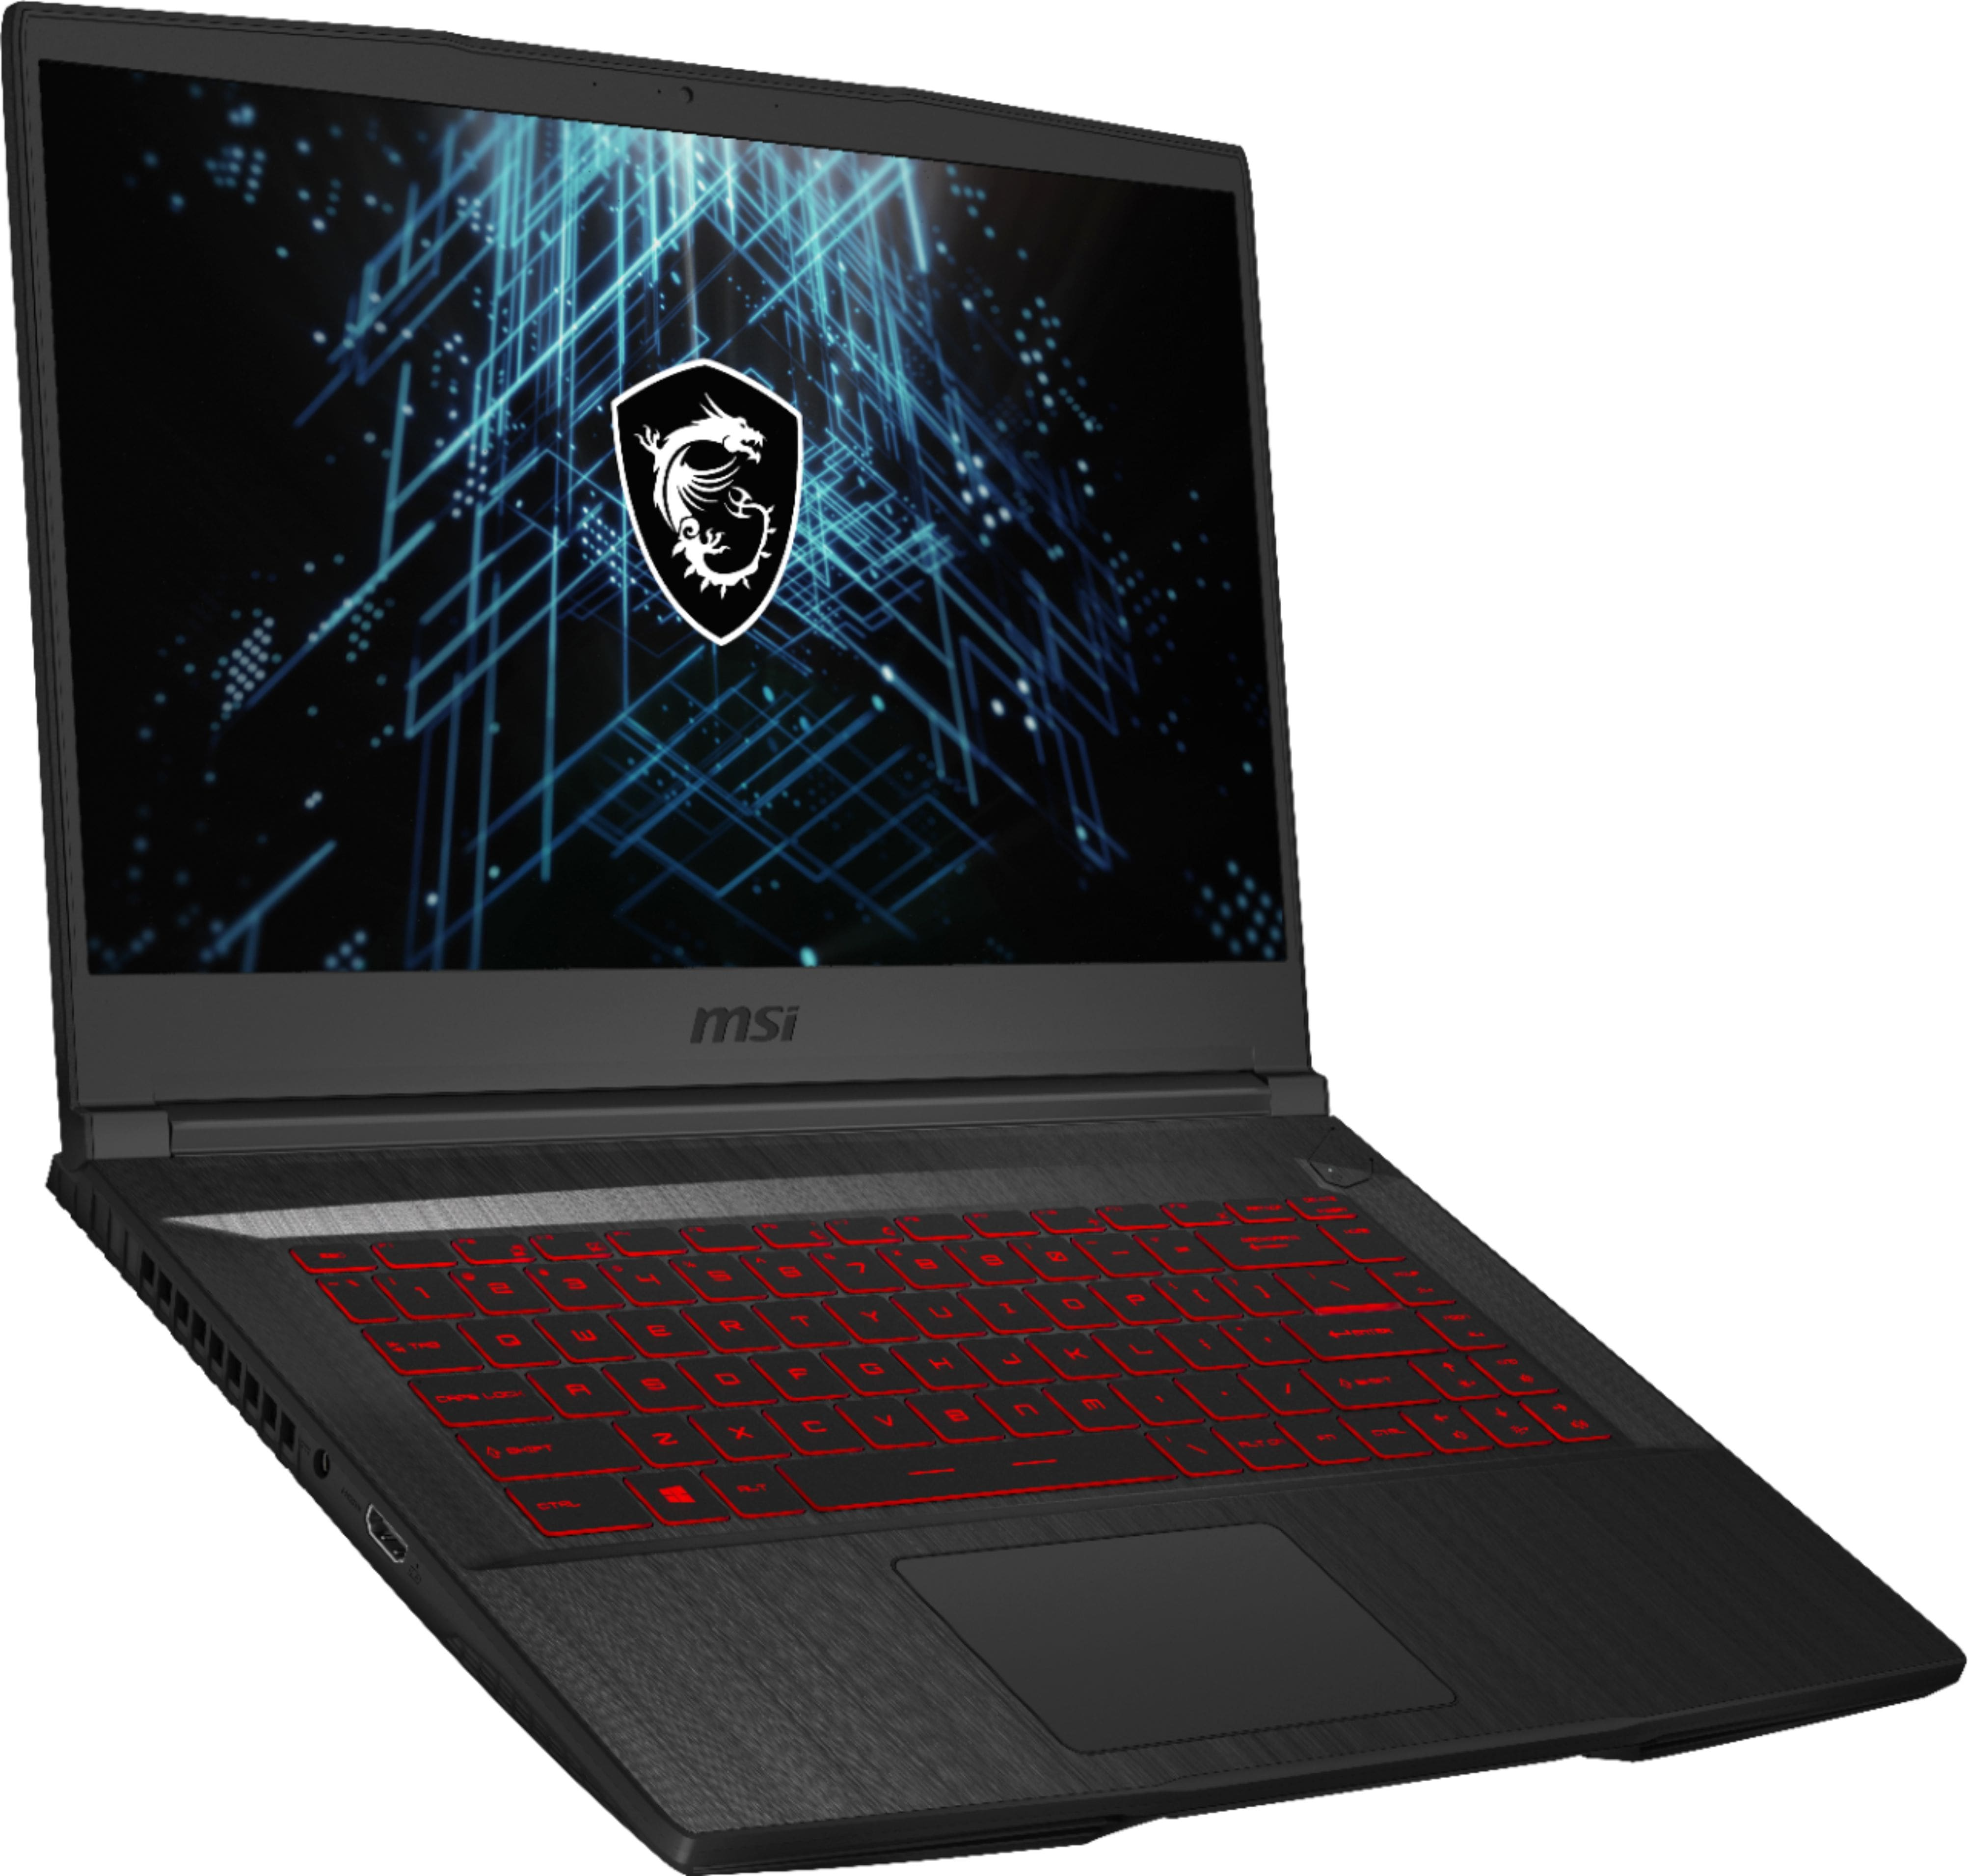 Best Buy: MSI GF65 Intel i5-10200H 6GB Nvidia RTX 3060 (Max-Q?) 8GB DDR4 512GB NVMe SSD 15.6'' 144Hz 1080p non-touch screen, WiFi 6, backlit keyboard 3-cell batt, pre-order $999.99